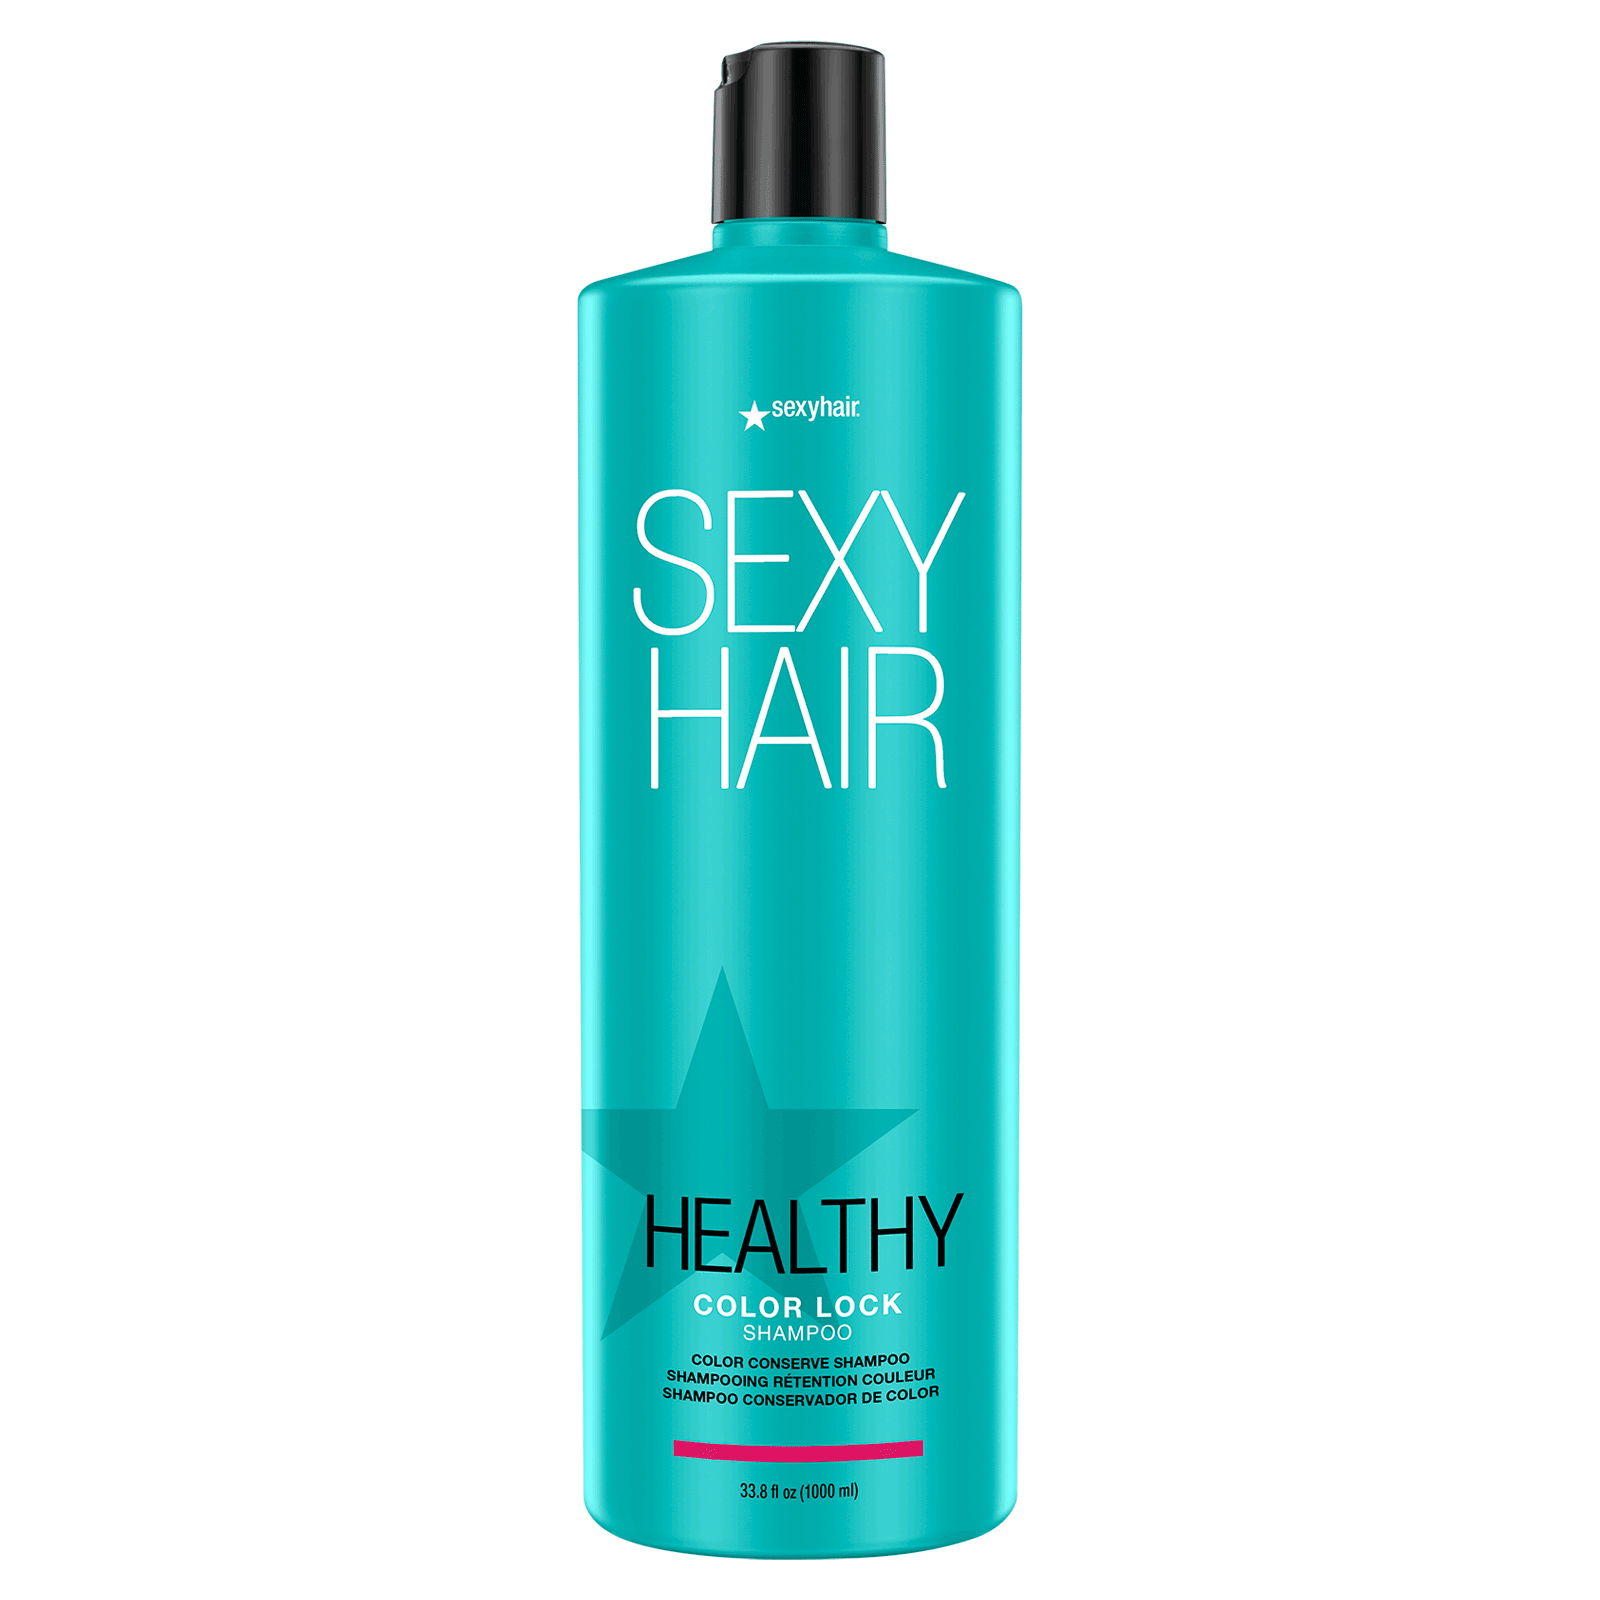 Vibrant Color Lock Shampoo